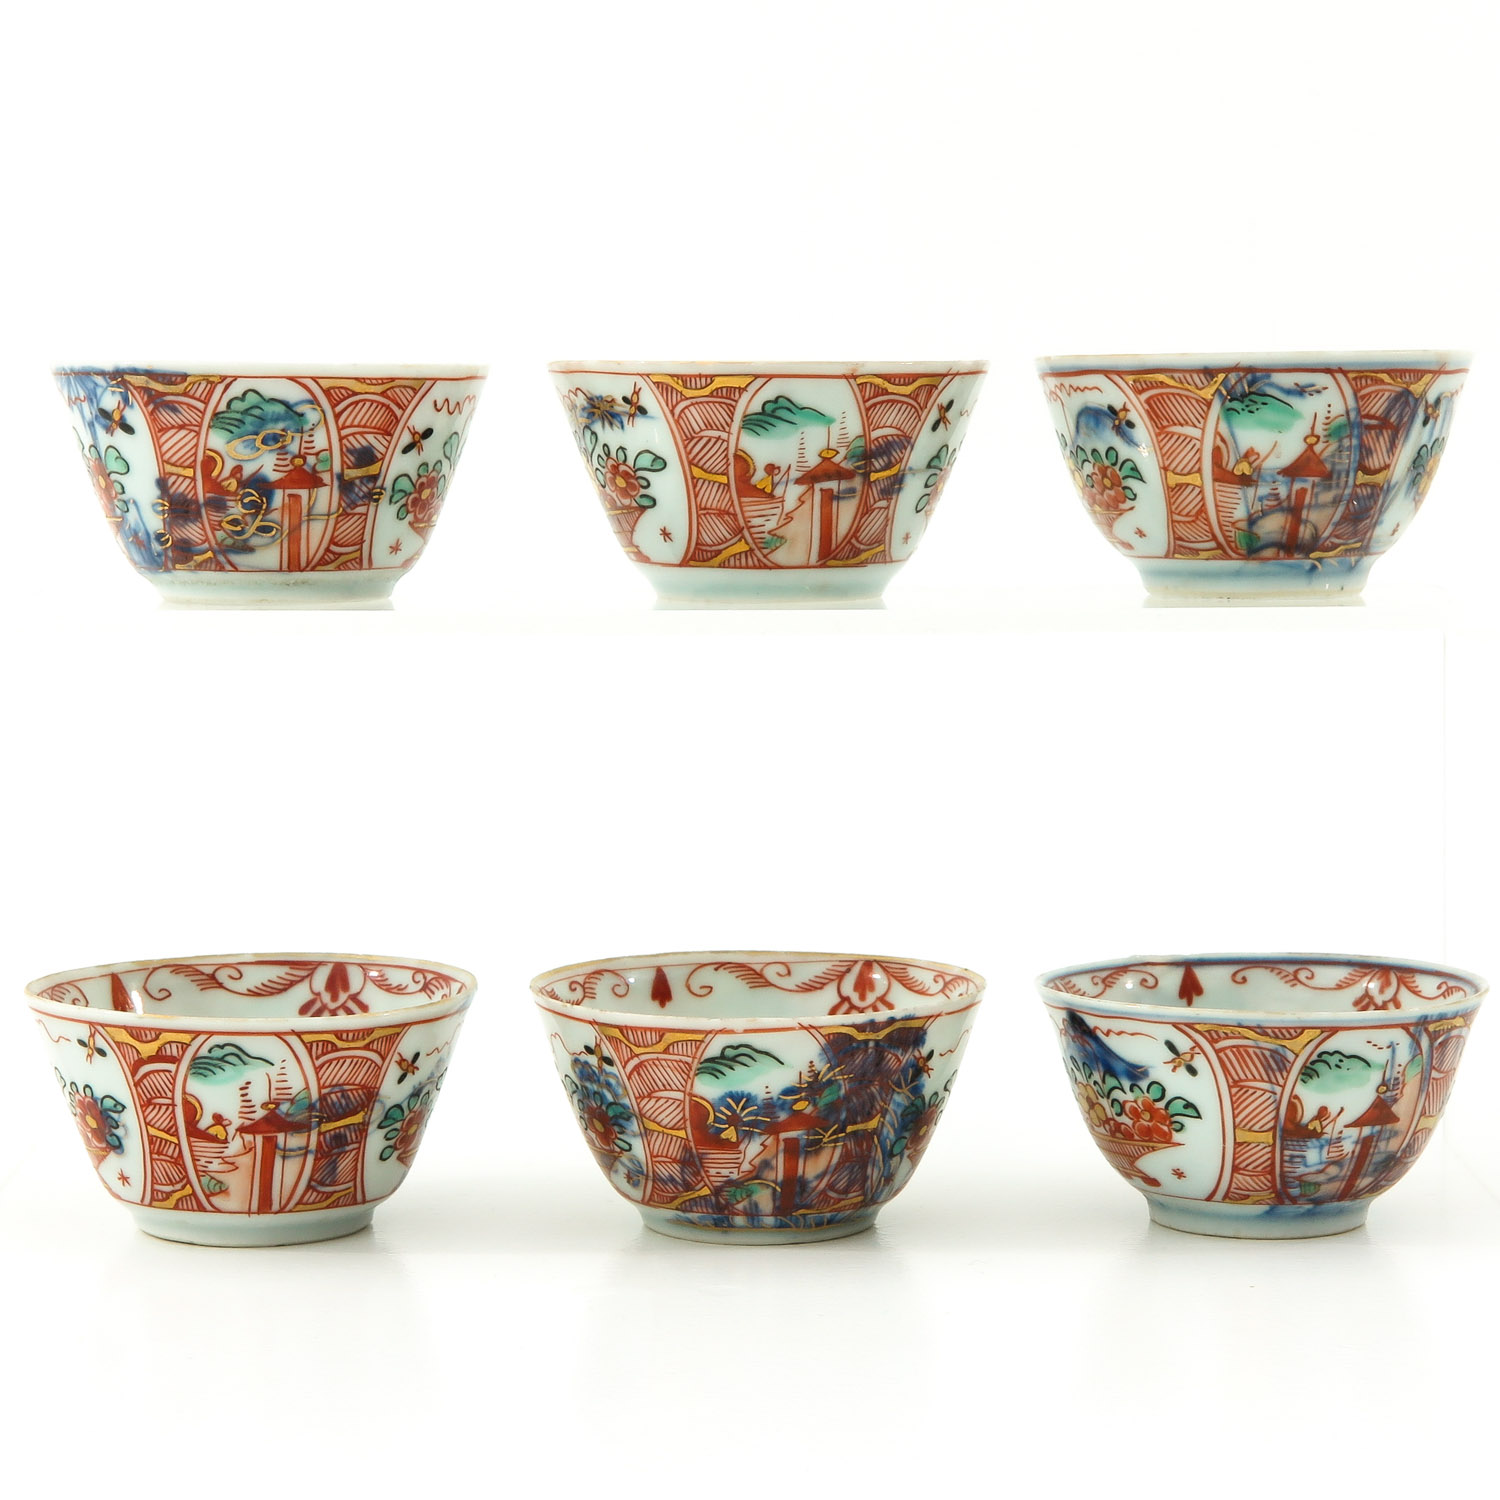 A Series of 6 Cups and Saucers - Image 4 of 10